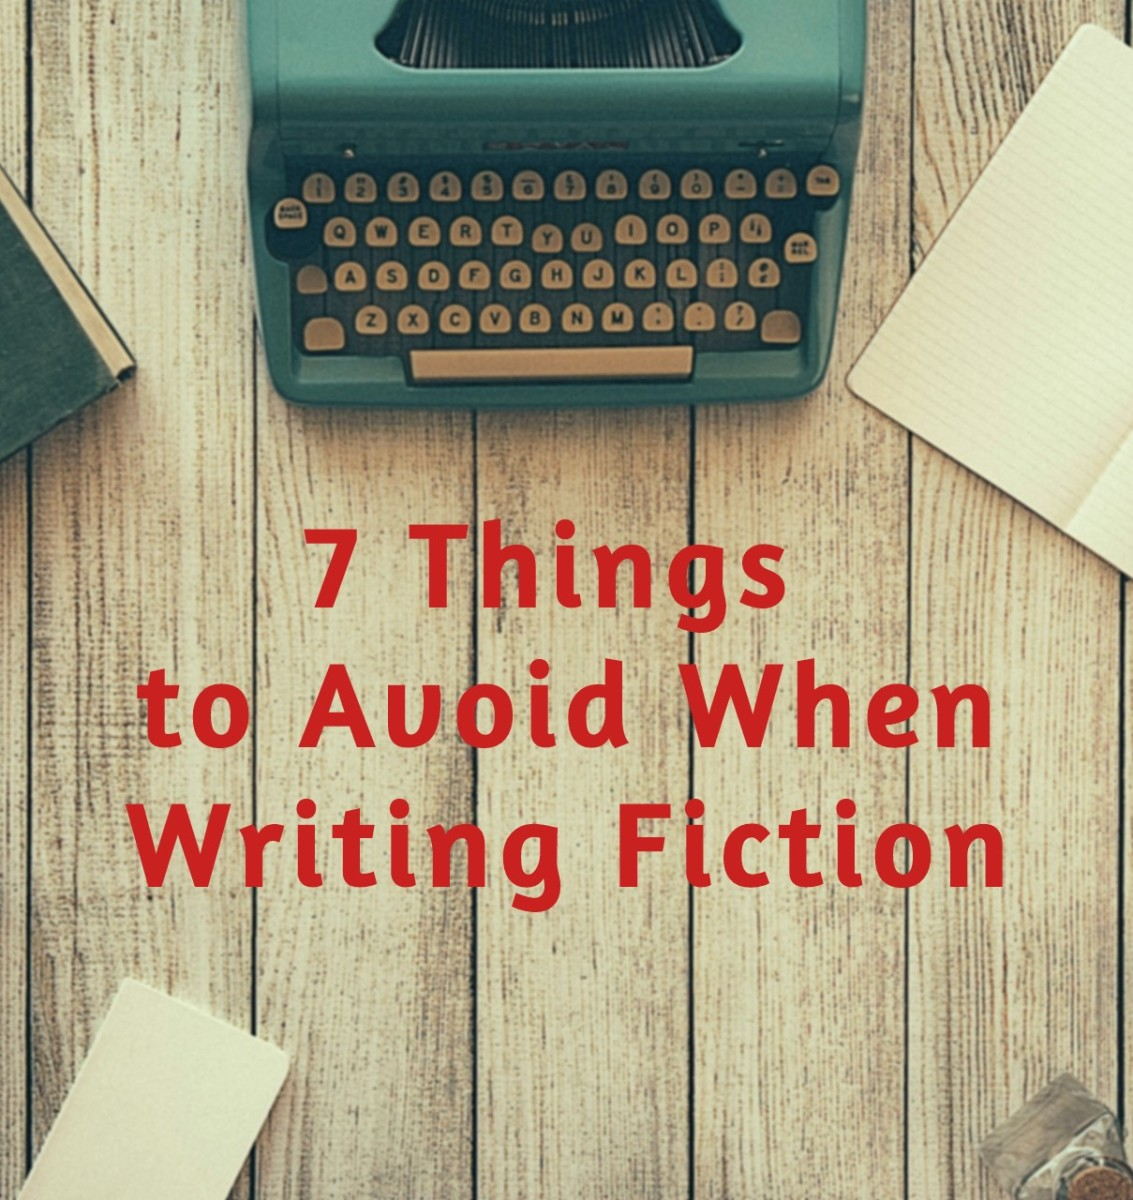 7 Things to Avoid When Writing Fiction